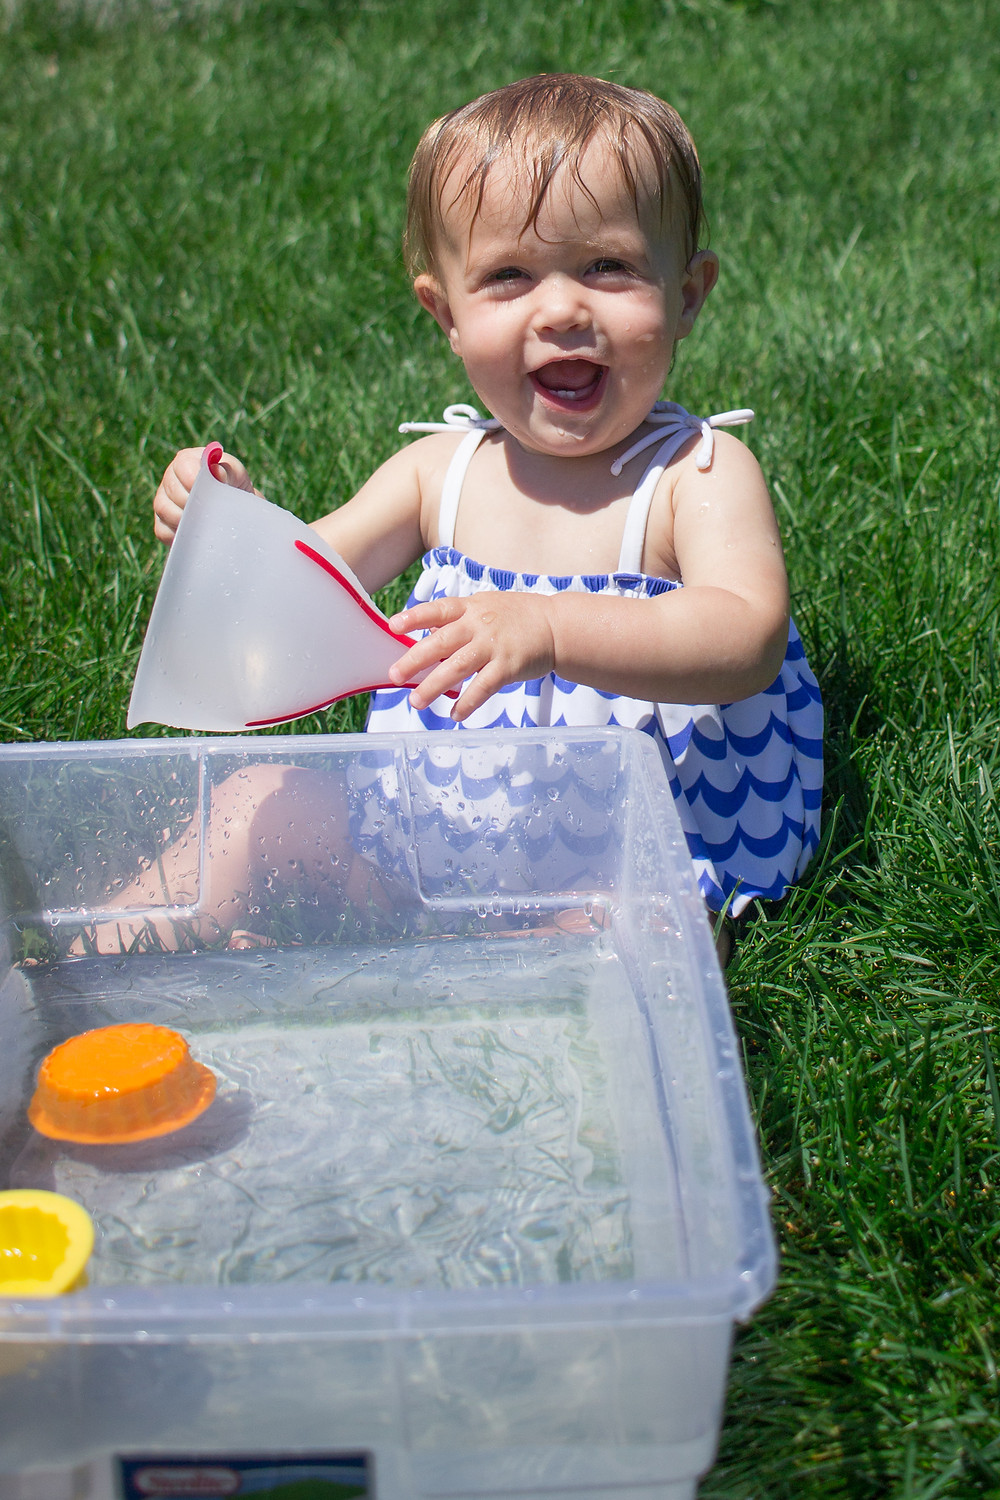 One of the smaller members of Blue Sky Daycare enjoys water play, too